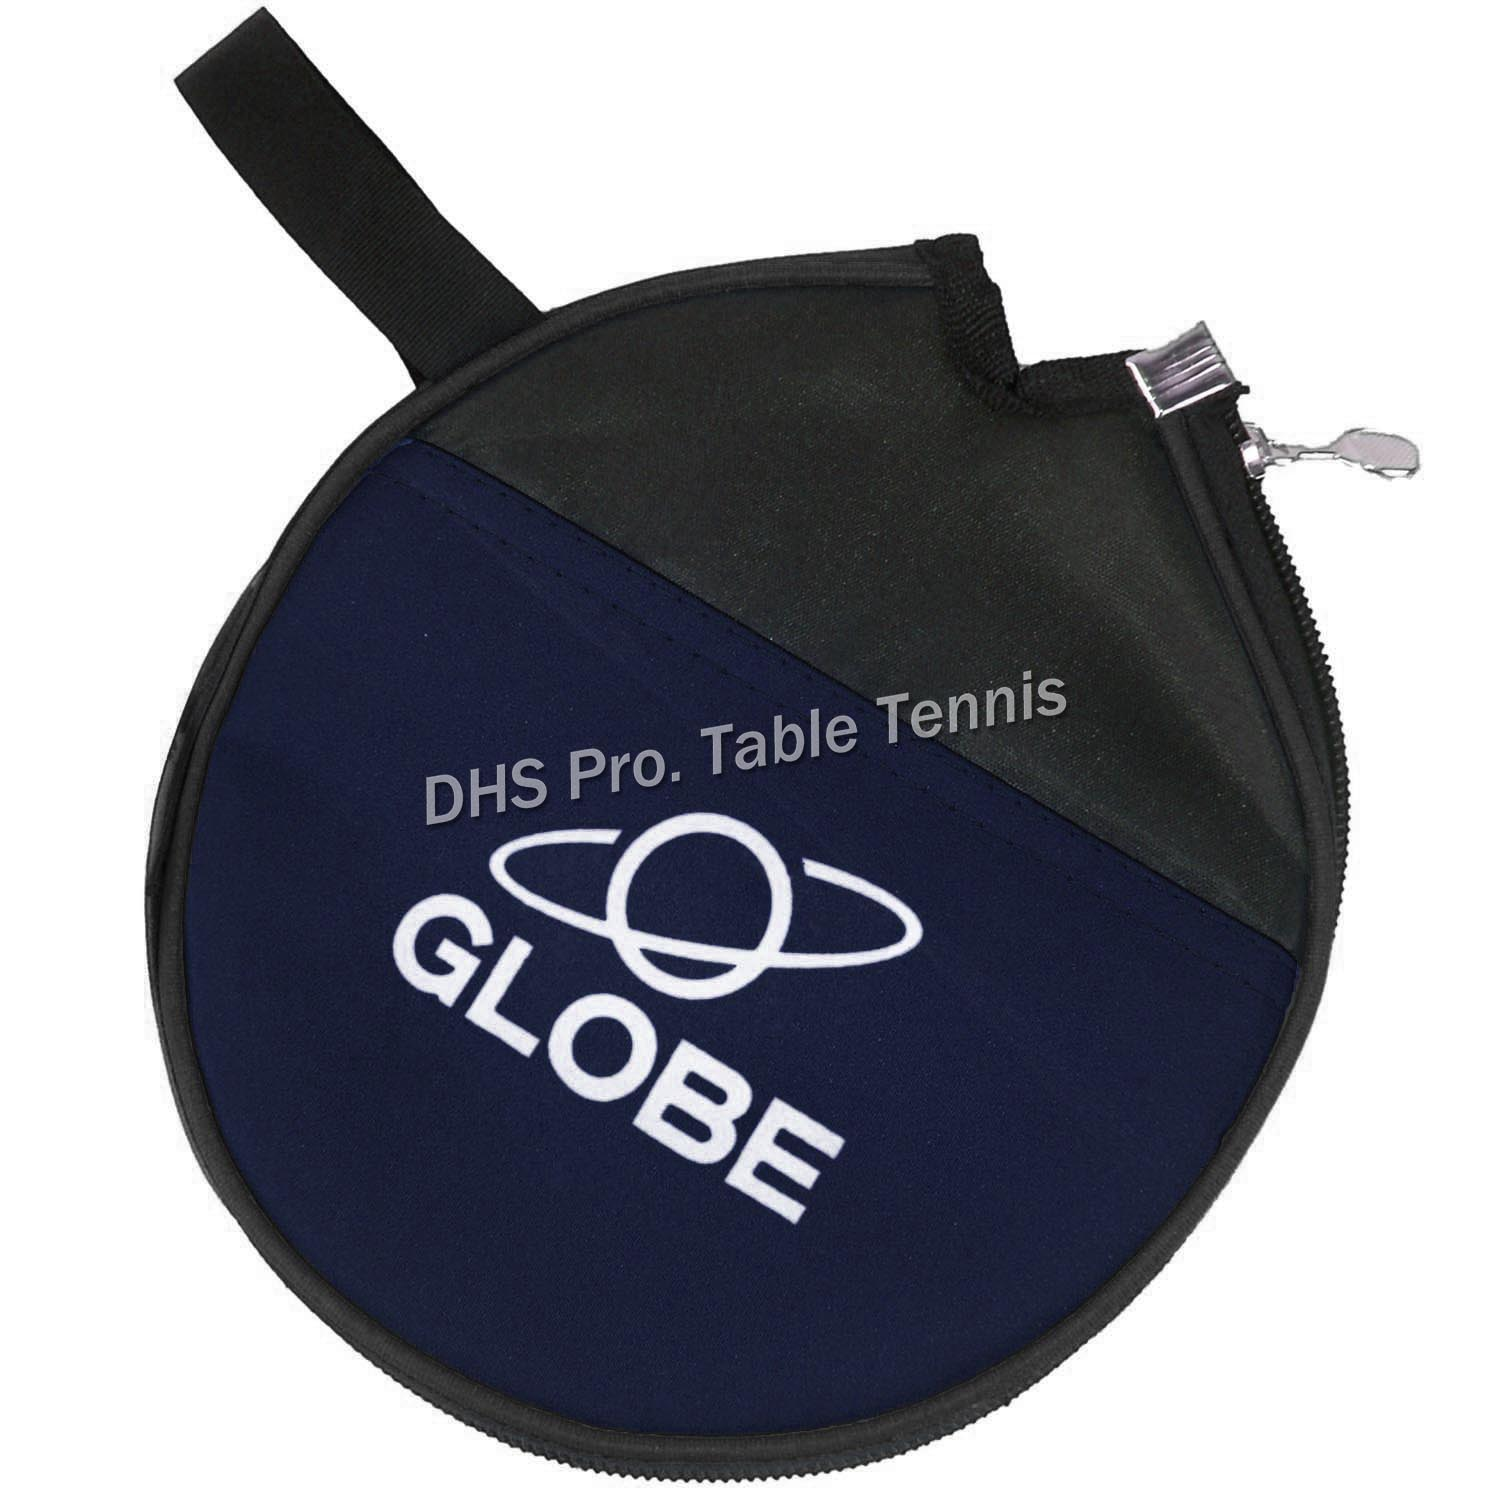 2x Globe Table Tennis Small Case Bat Cover For PingPong Racket